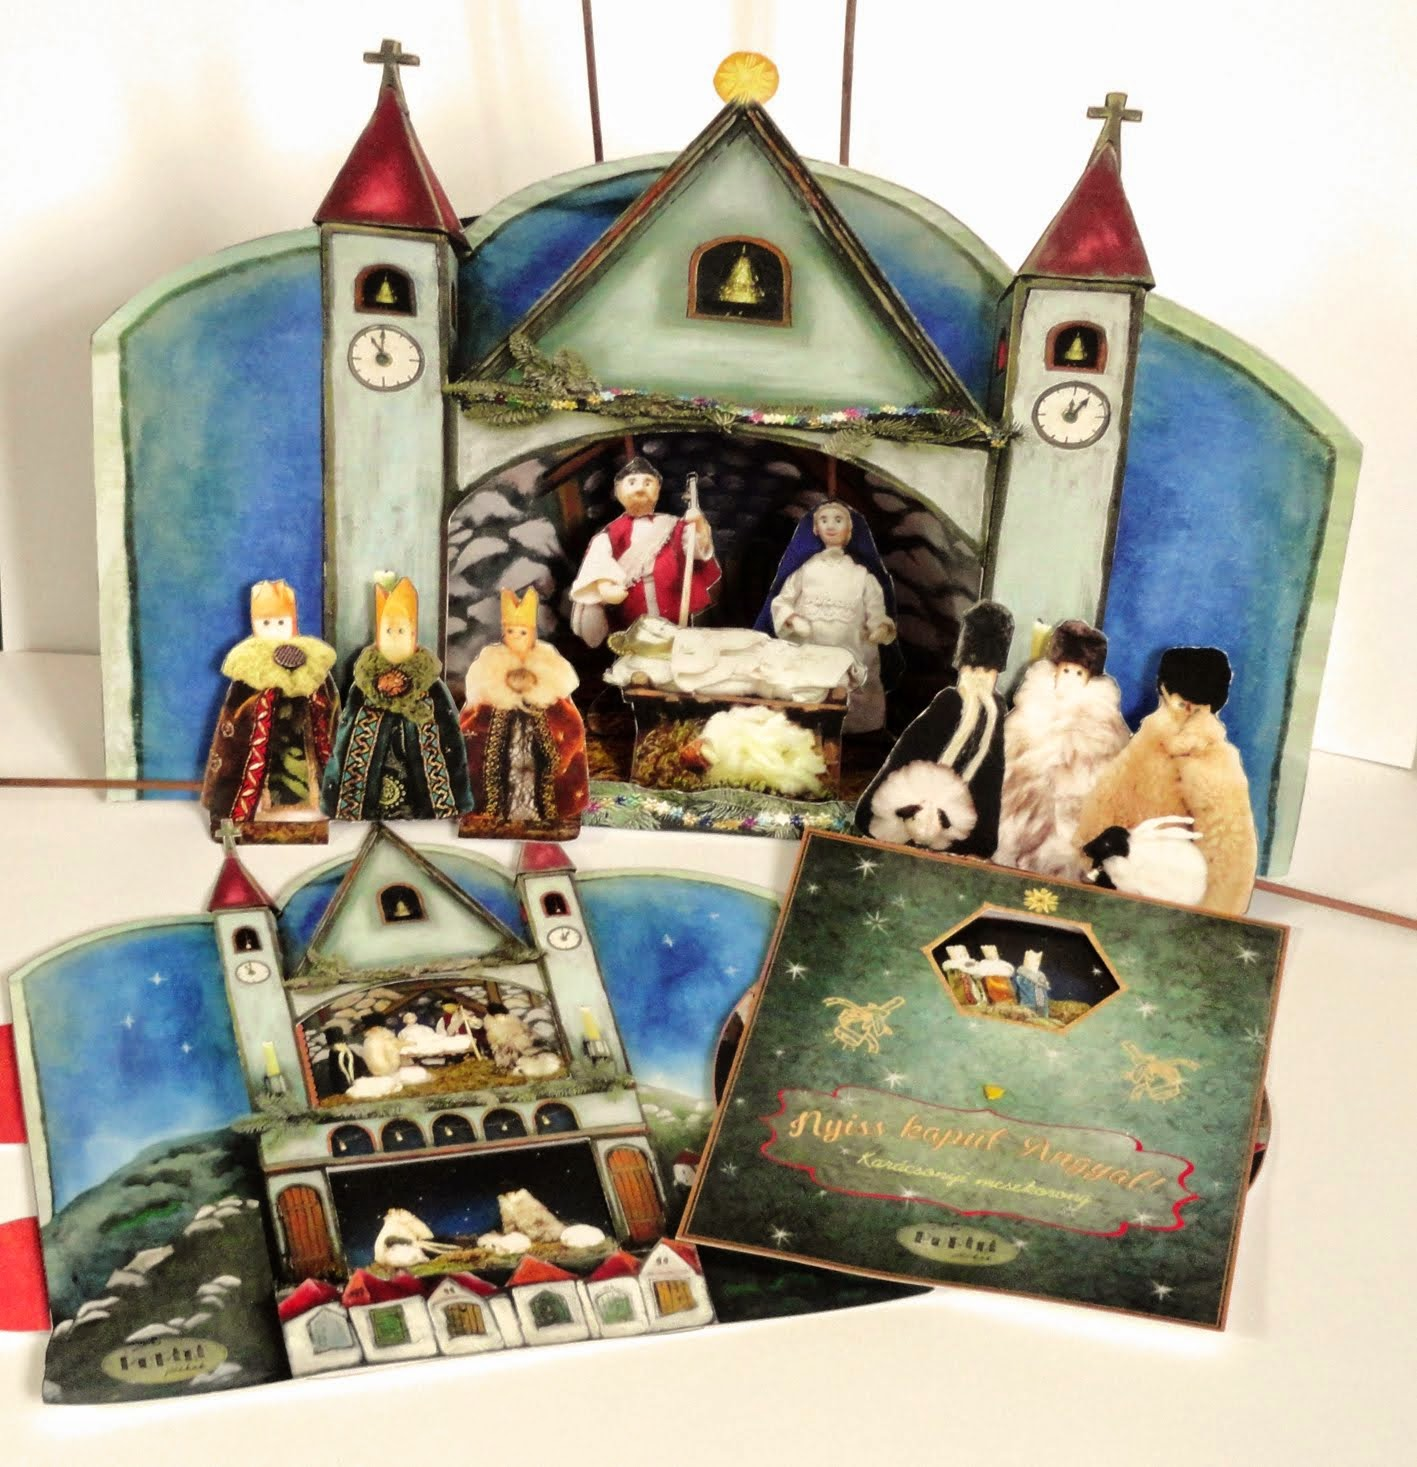 Betlehemes sorozat / Nativity play set